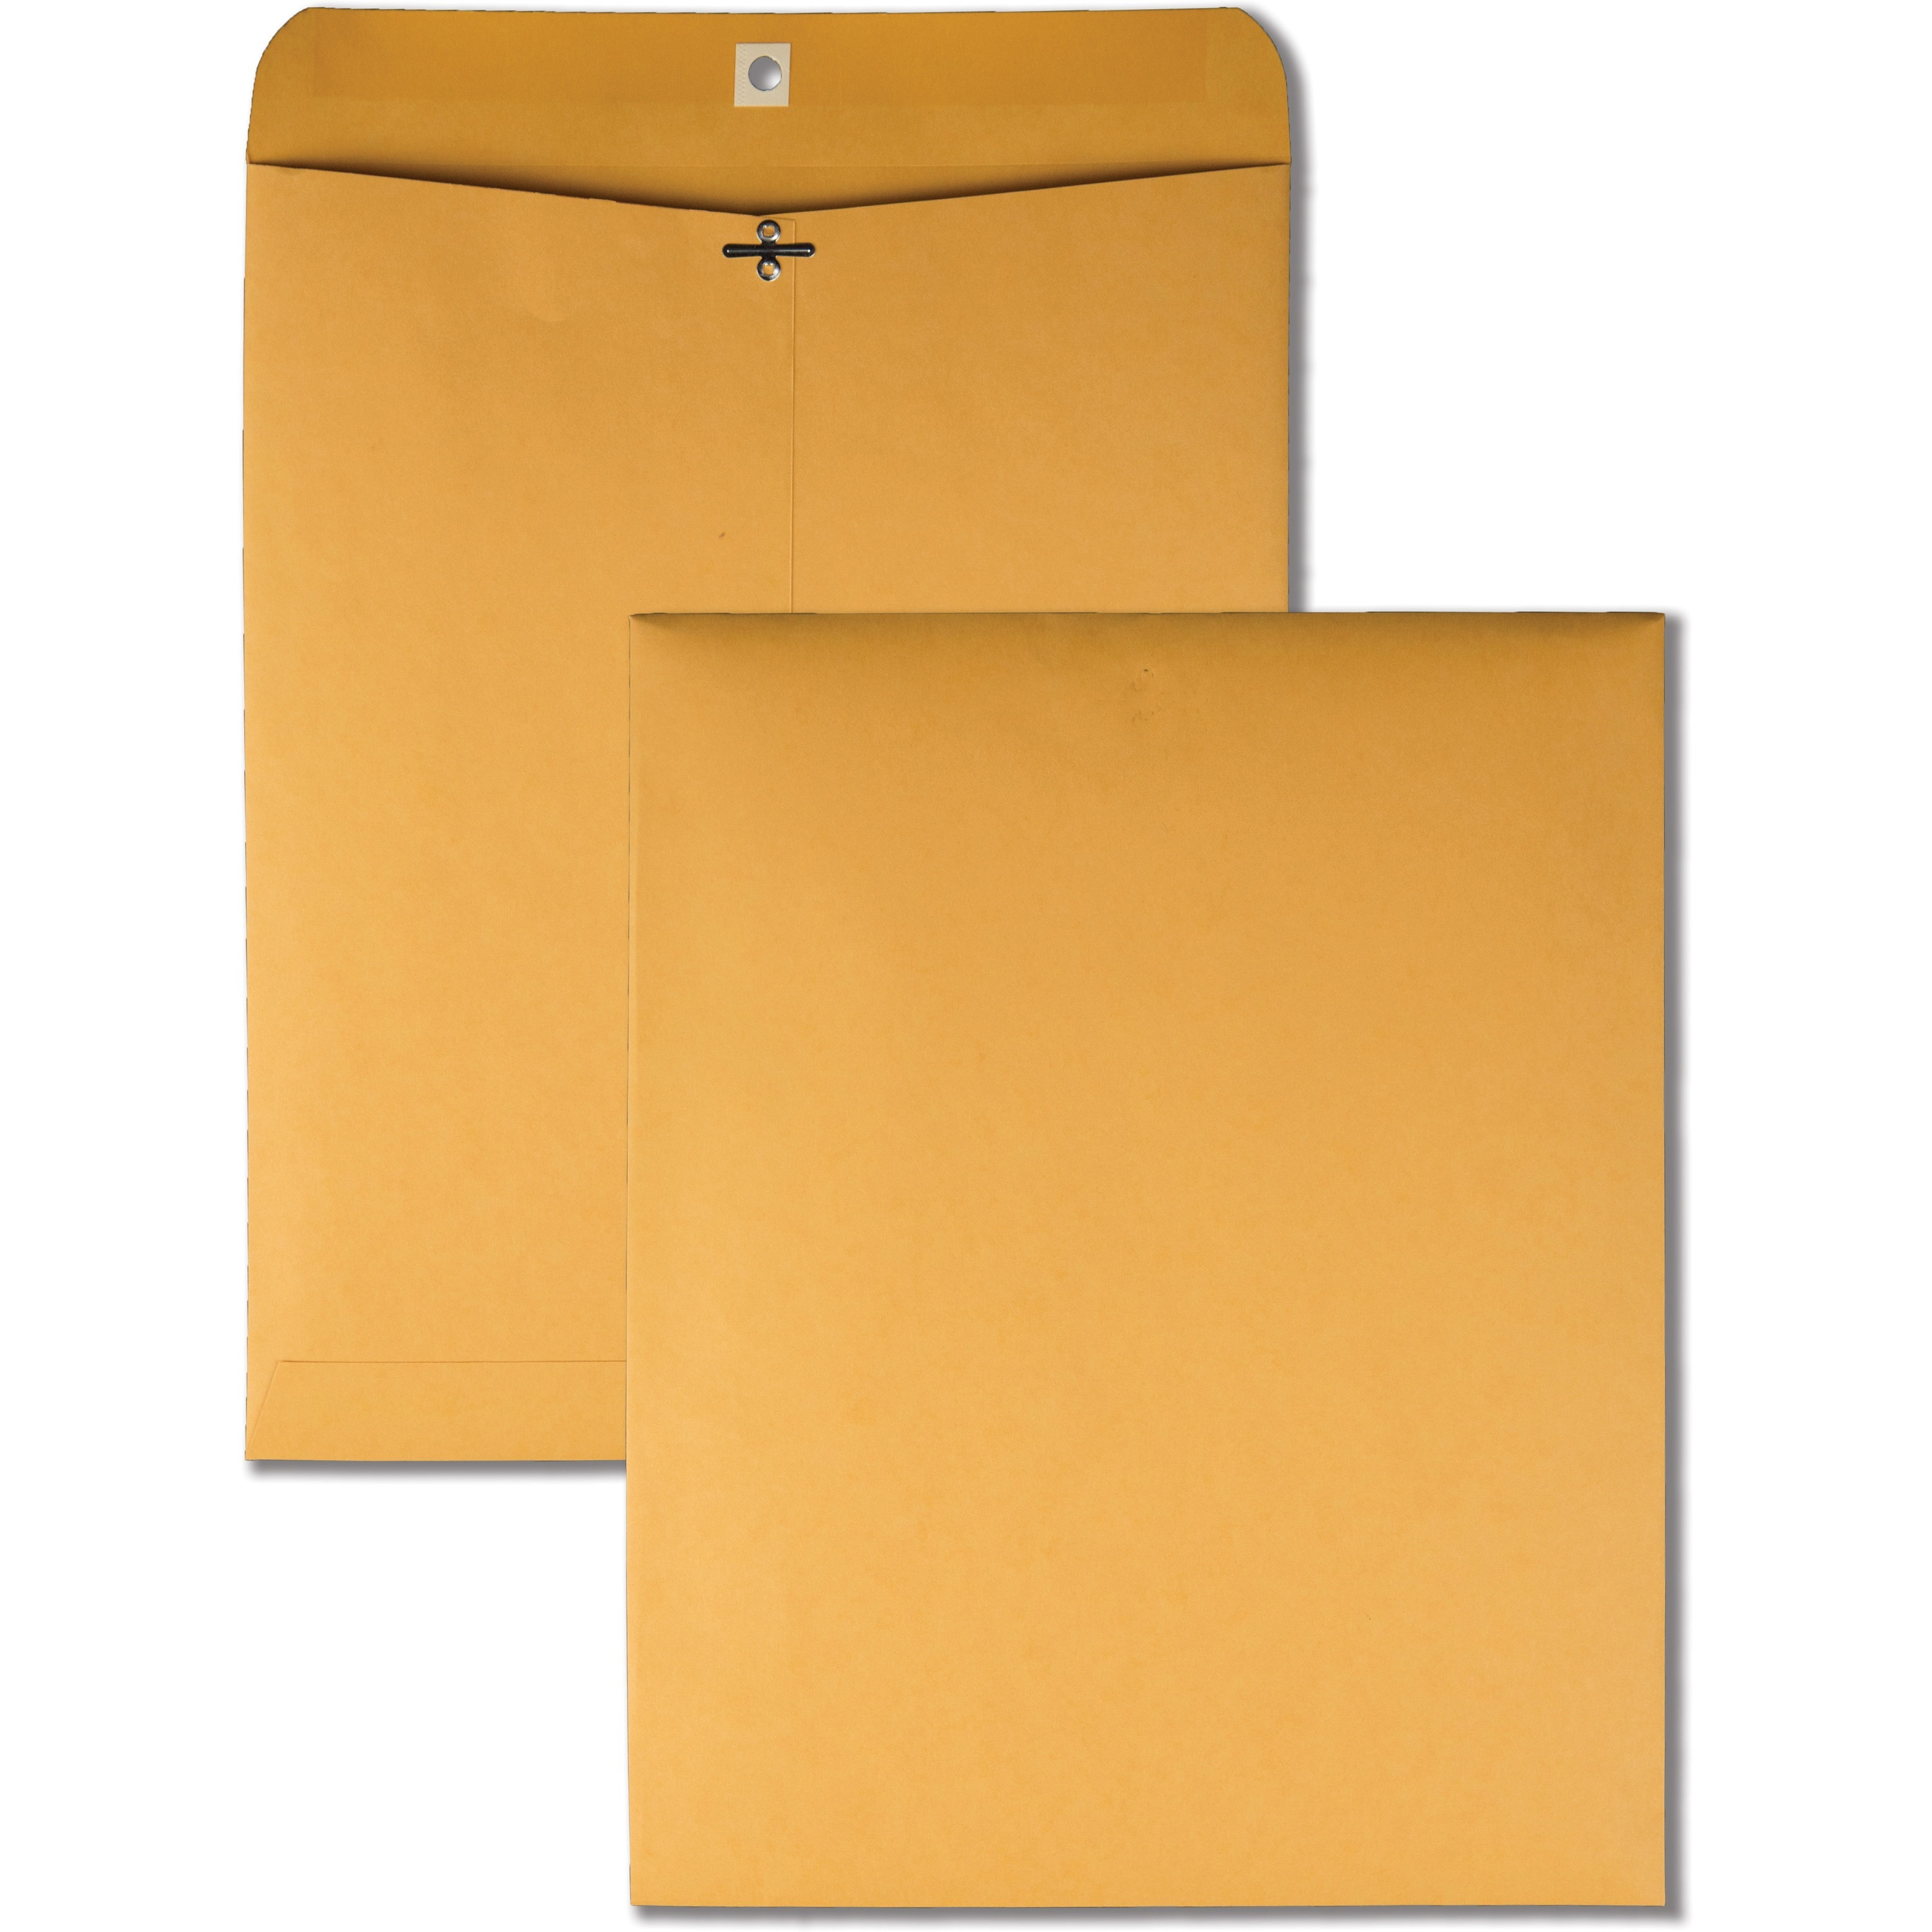 Clasp Envelope, 11 1/2 x 14 1/2, 32lb, Brown Kraft, 100/Box